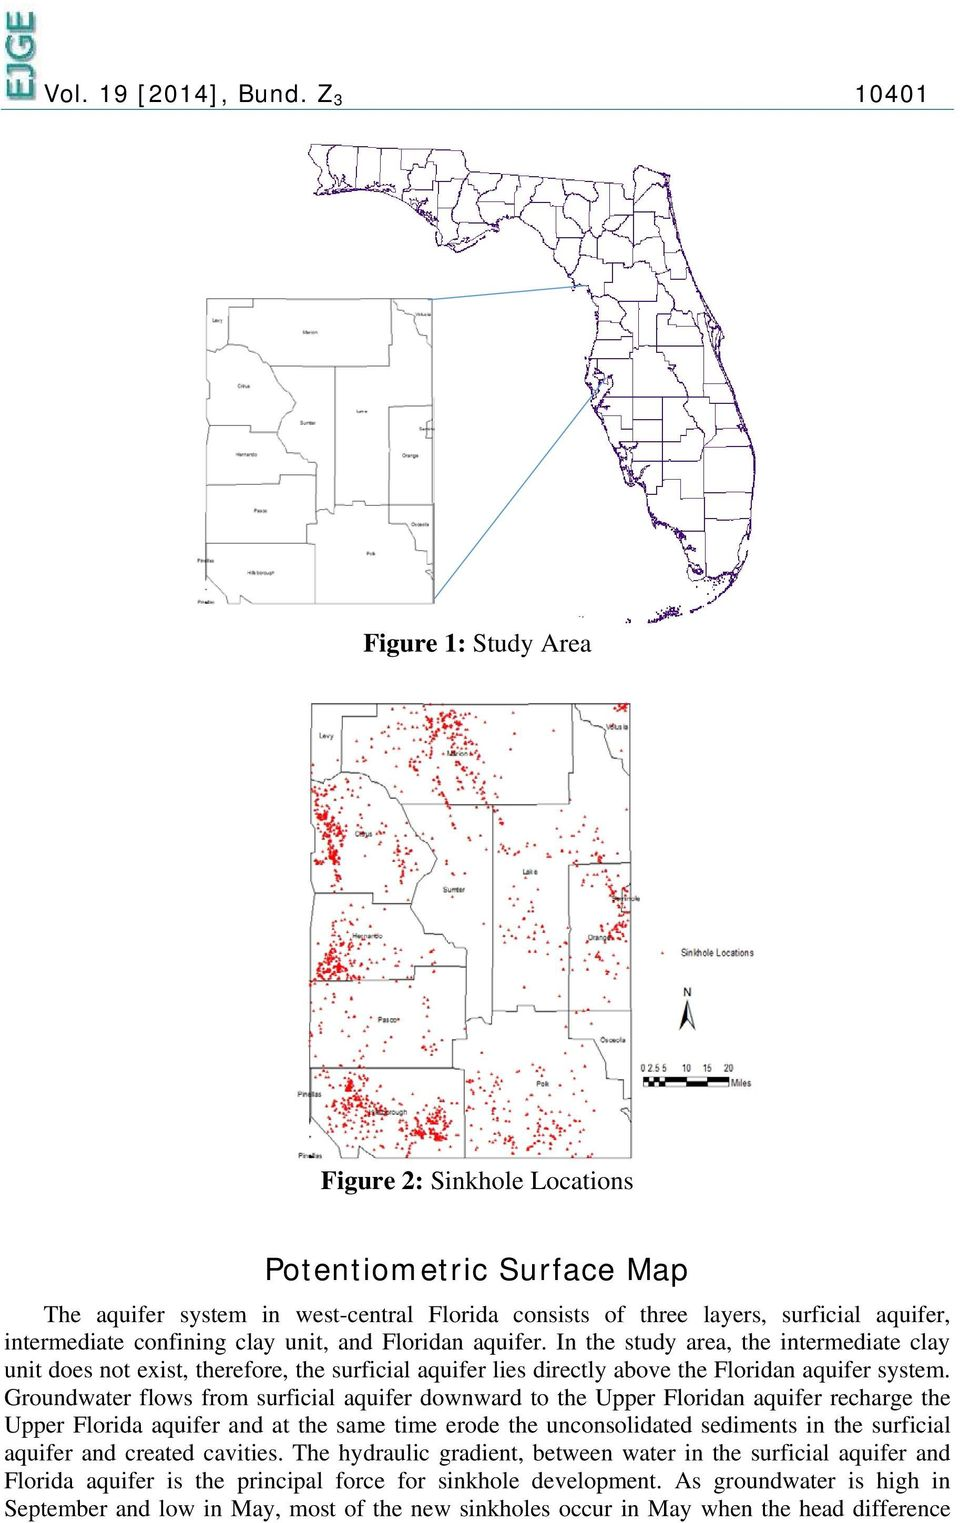 clay unit, and Floridan aquifer. In the study area, the intermediate clay unit does not exist, therefore, the surficial aquifer lies directly above the Floridan aquifer system.